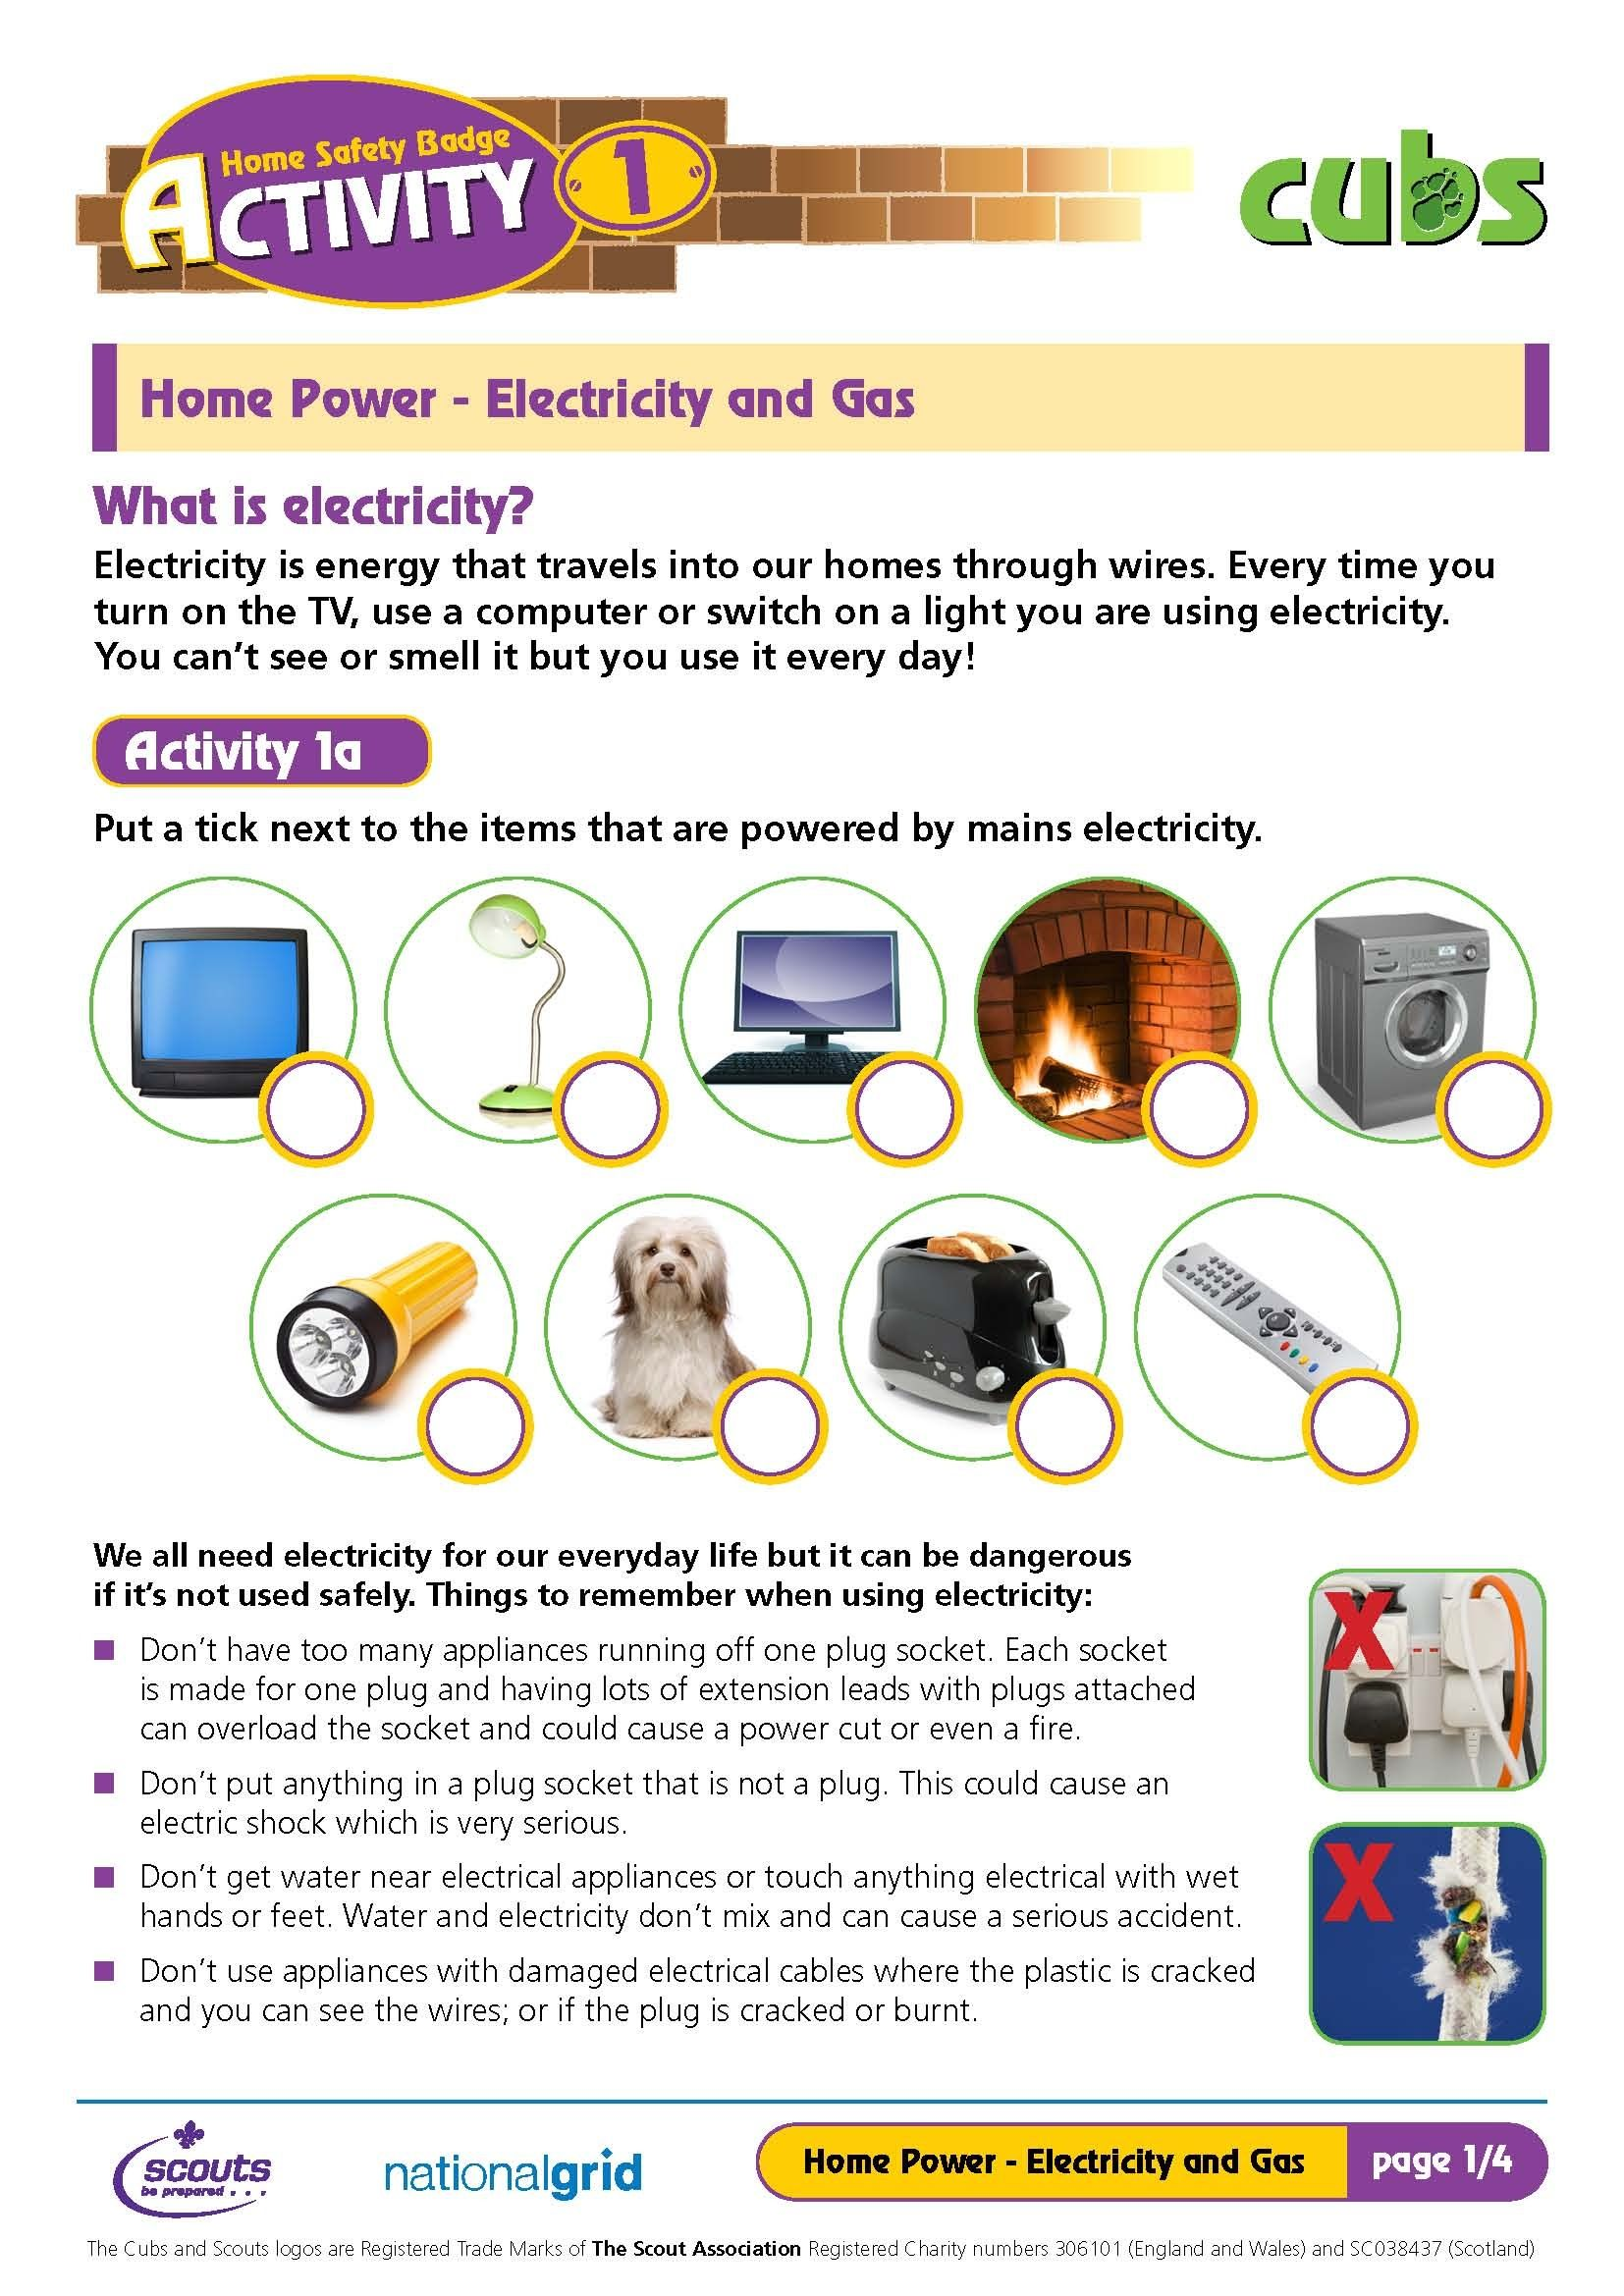 Cub Scouts (UK) Home Safety activity sheets | Scouts UK | Pinterest ...